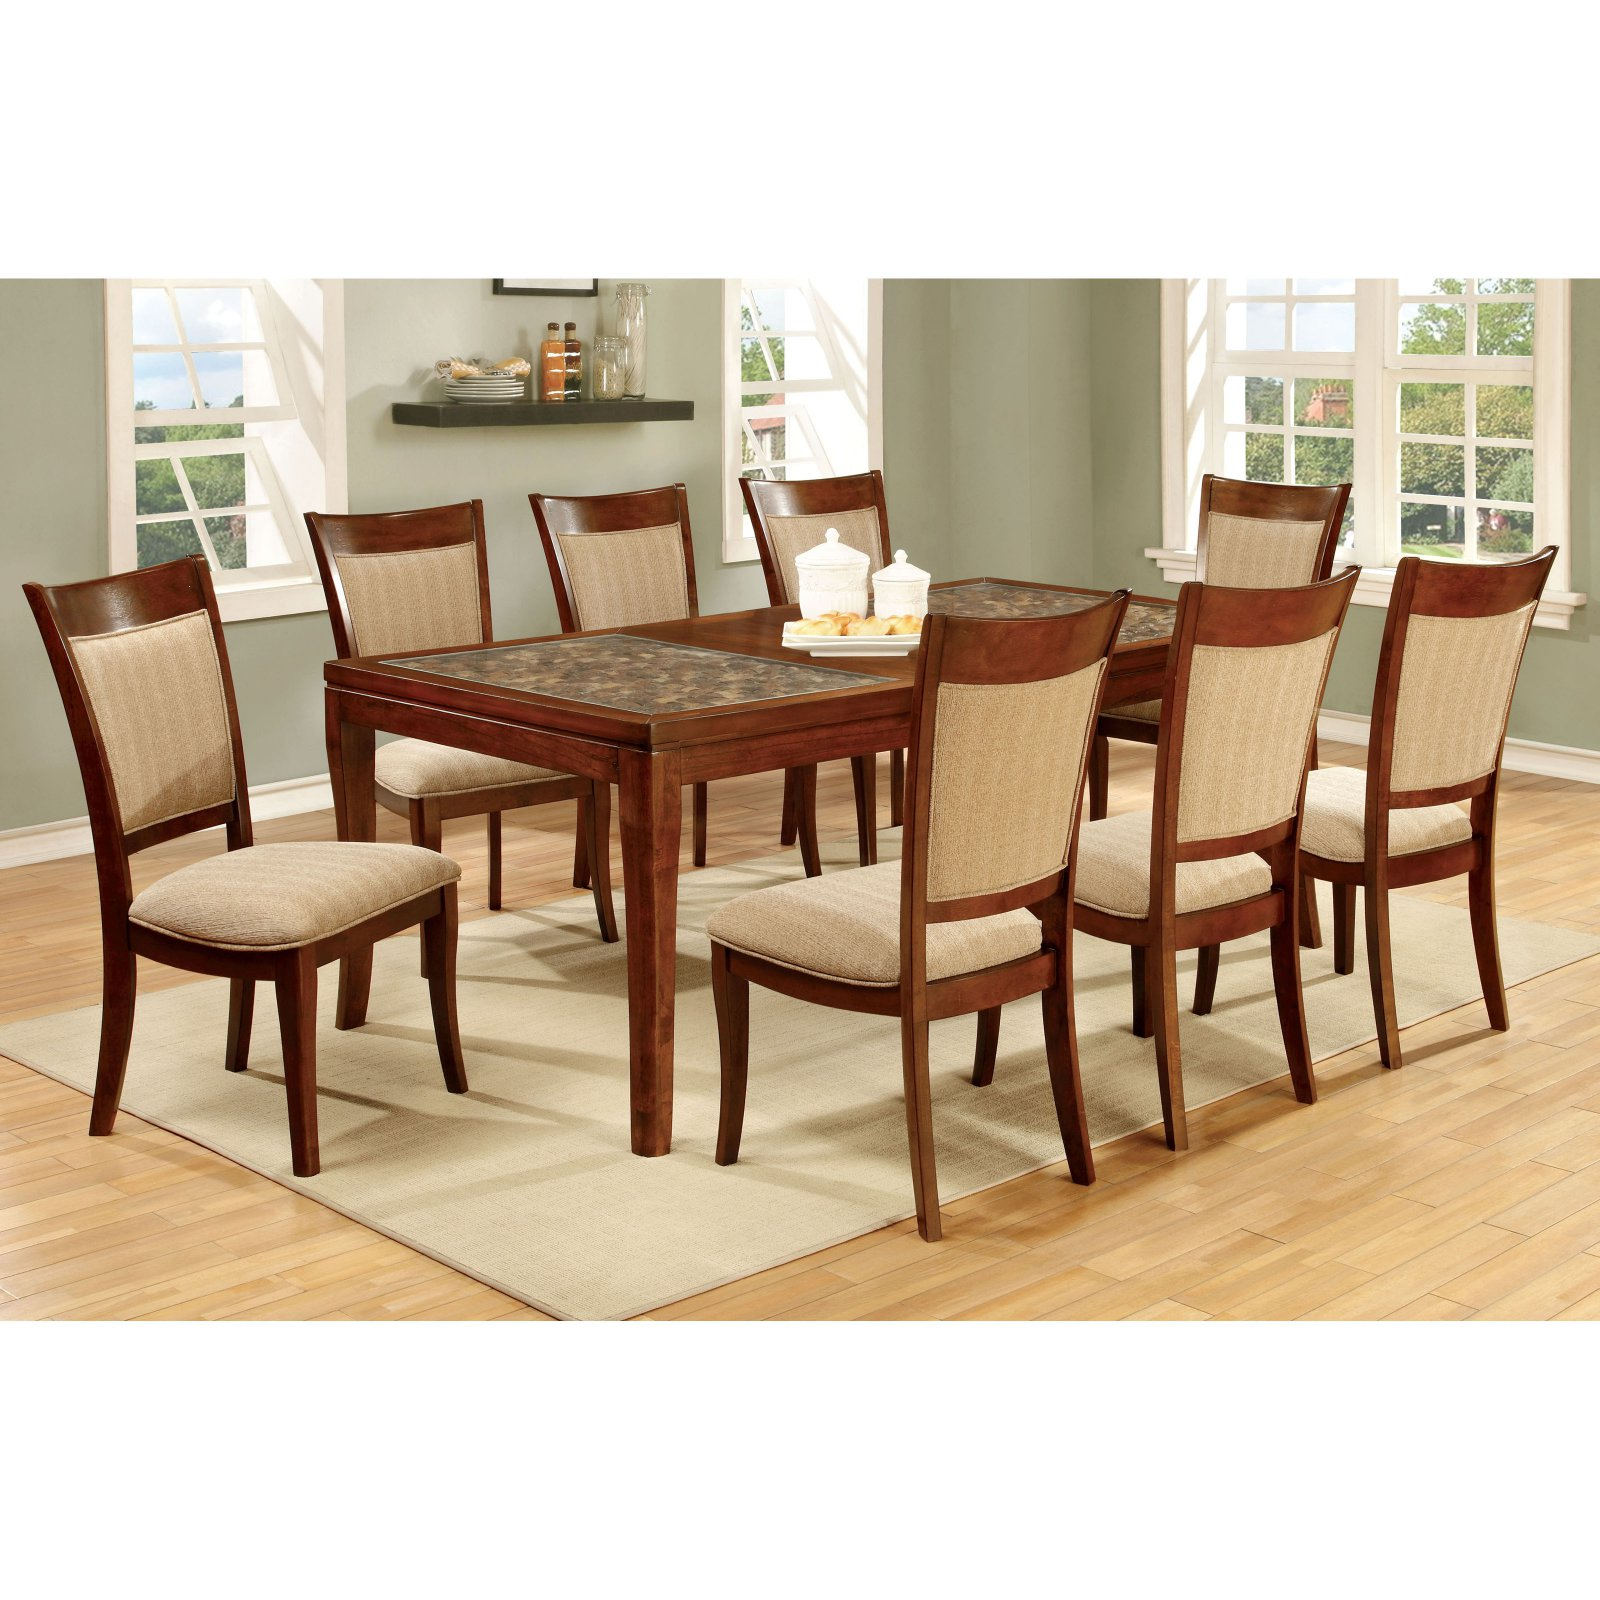 Furniture of America Creekmore 78 in. Dining Table with Woven Table Top Design